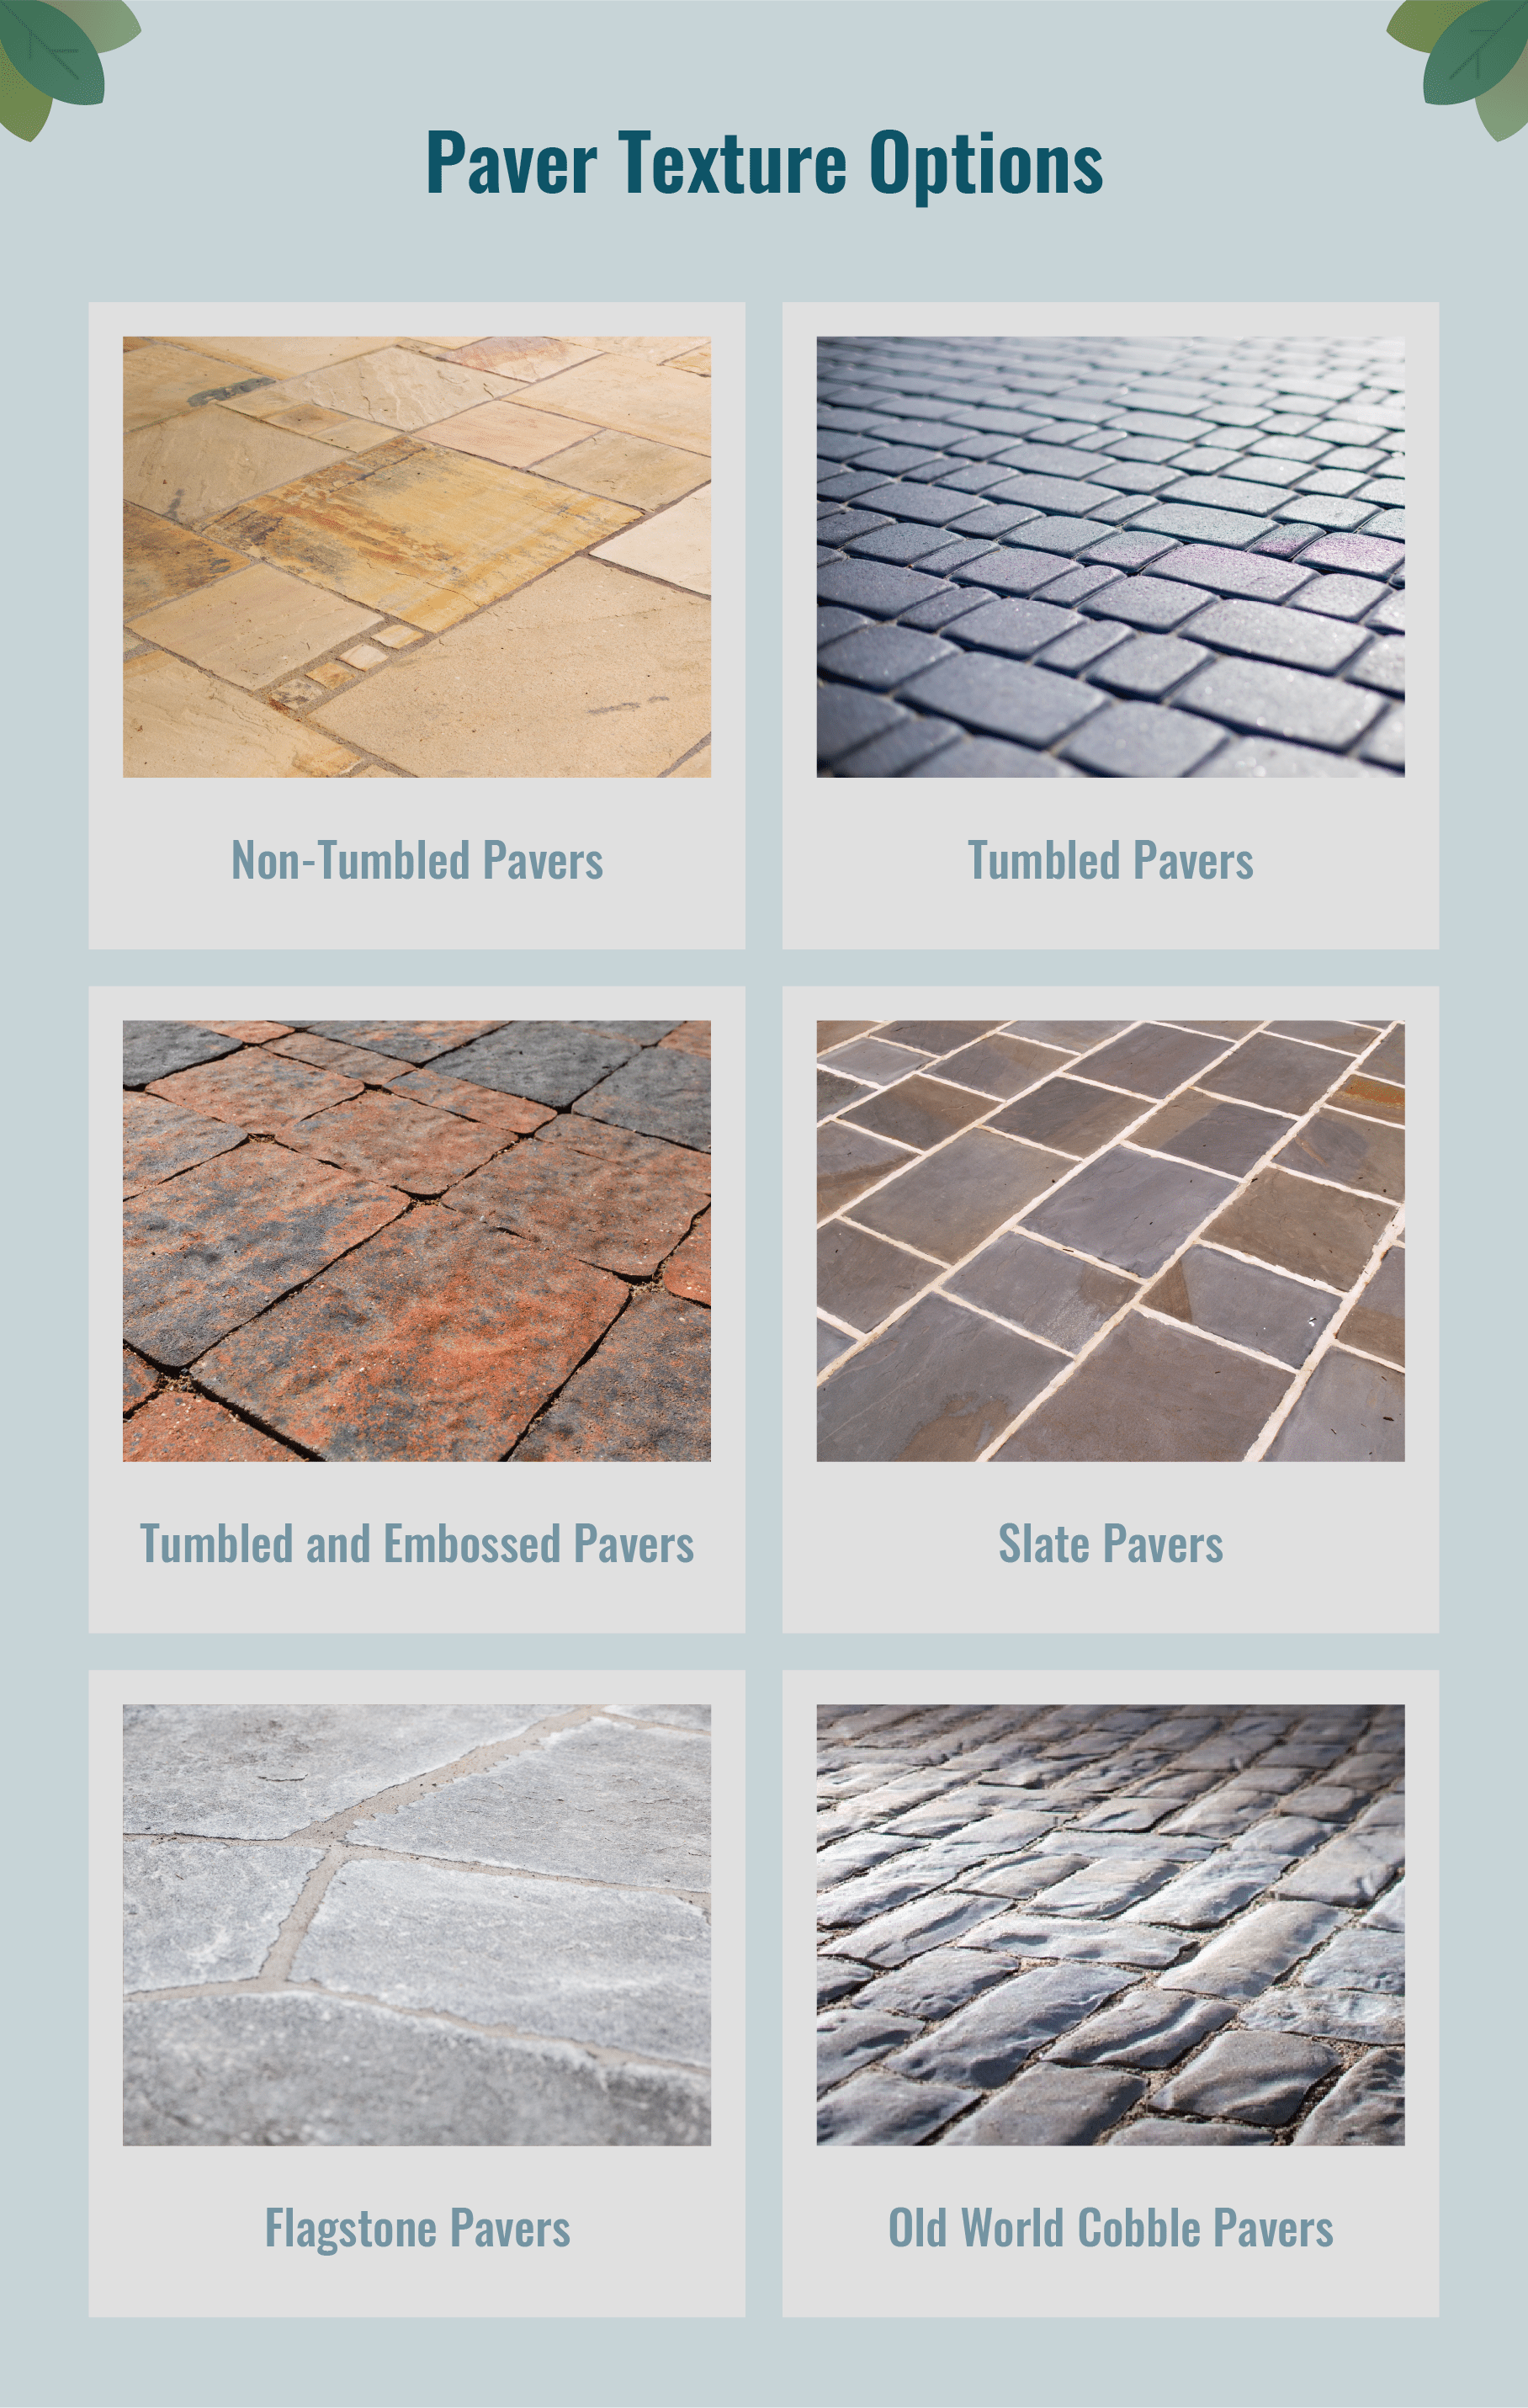 Paver Texture Options